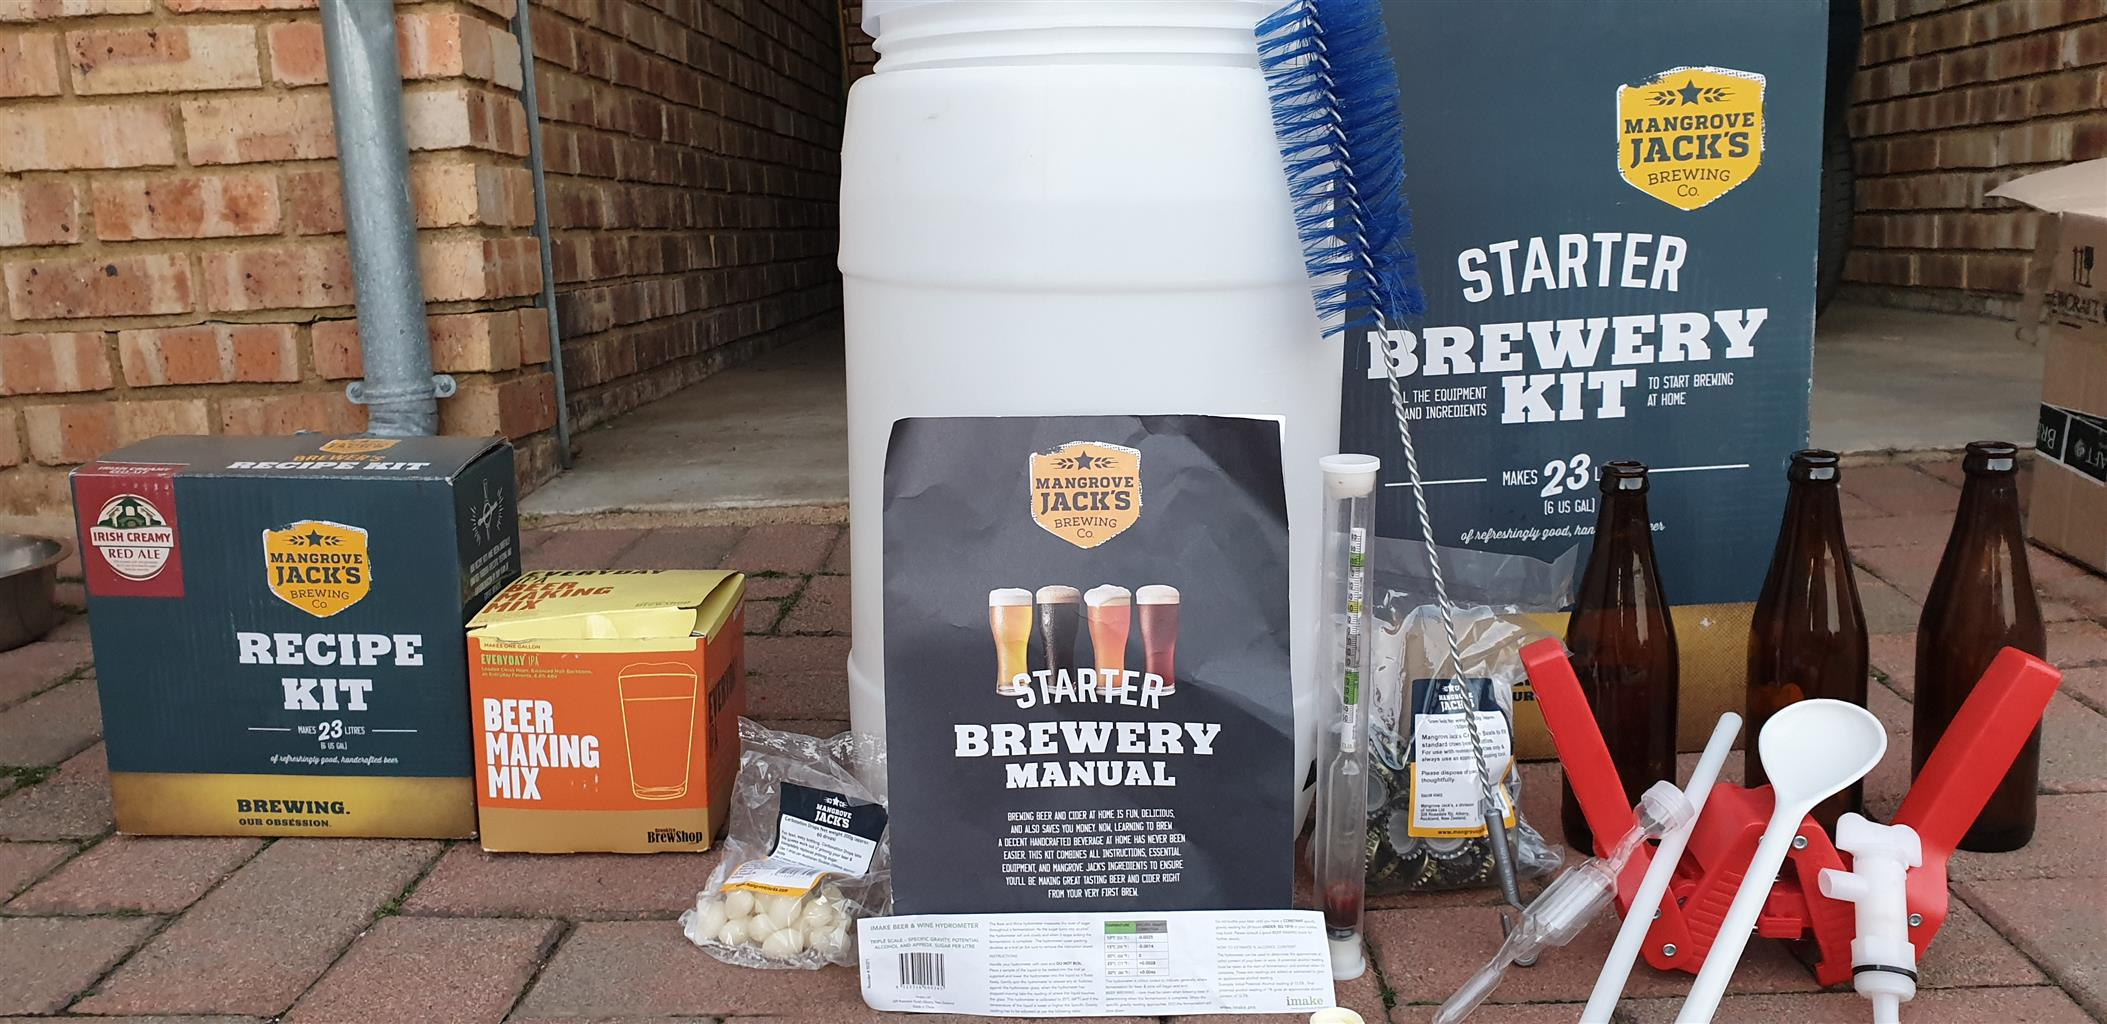 Beer Brewing Kit: Mangrove Jack's Brewery Starter Kit | Junk Mail